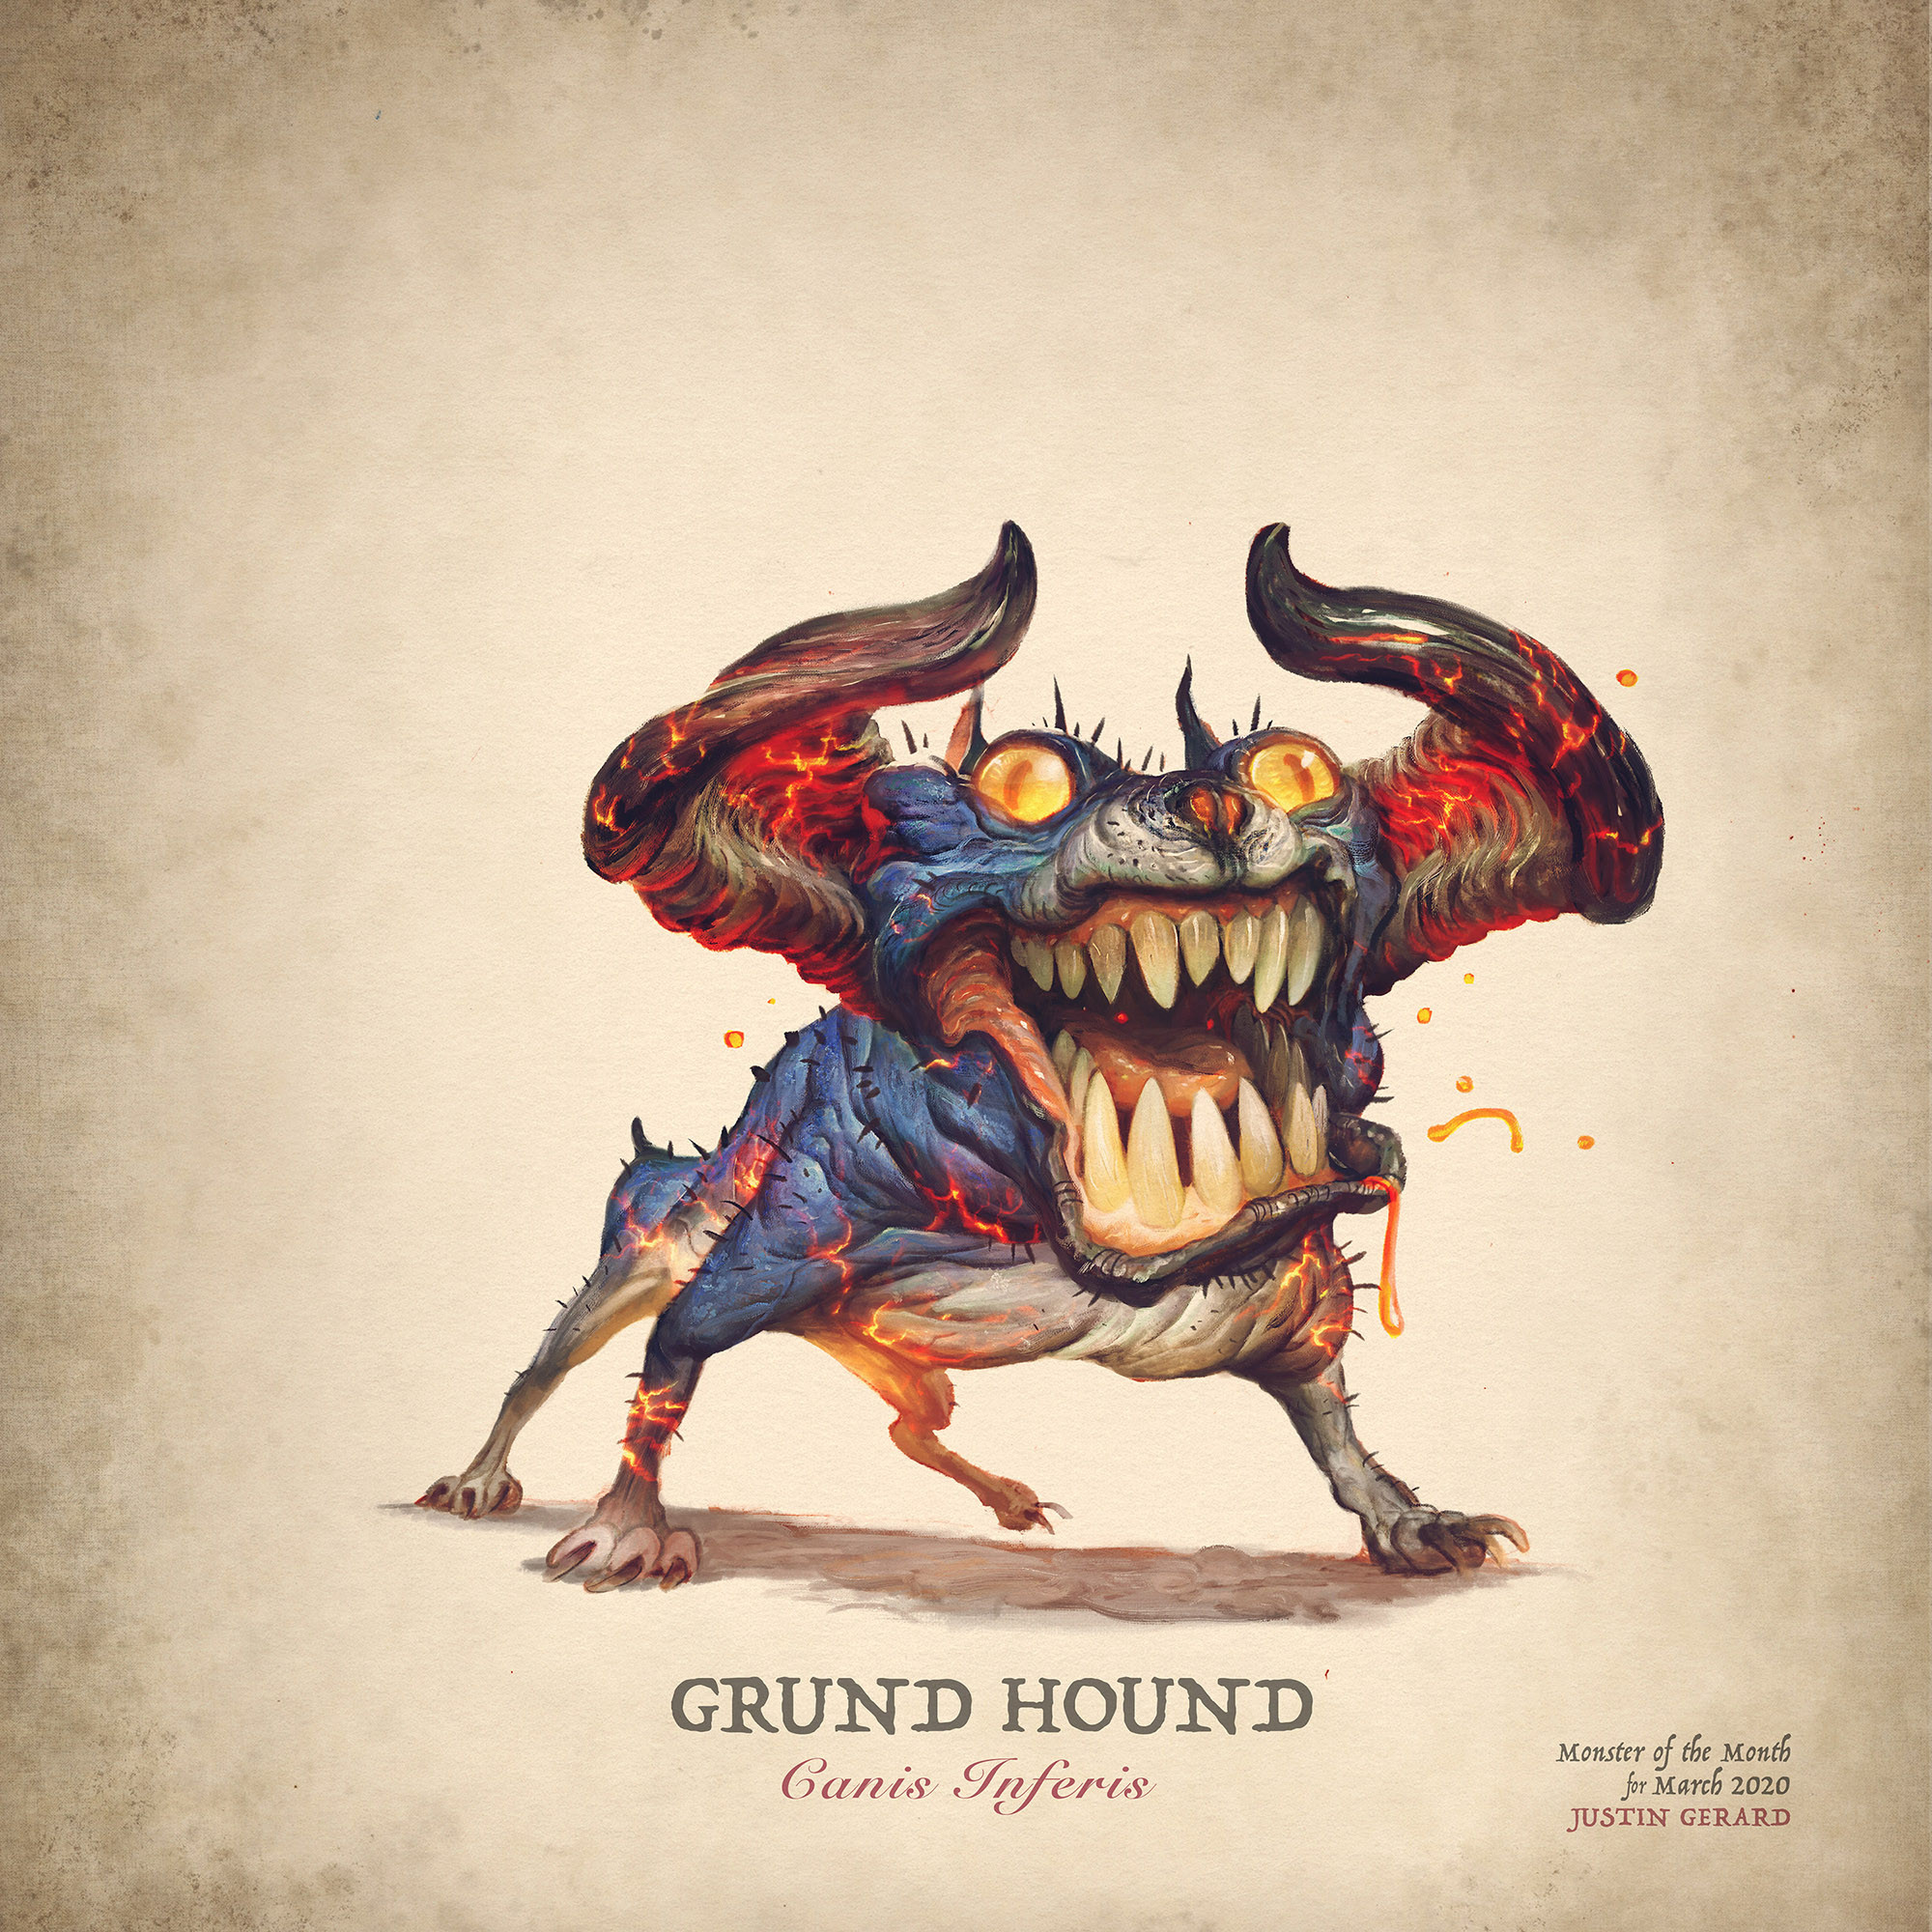 Grund Hound final color art in Photoshop